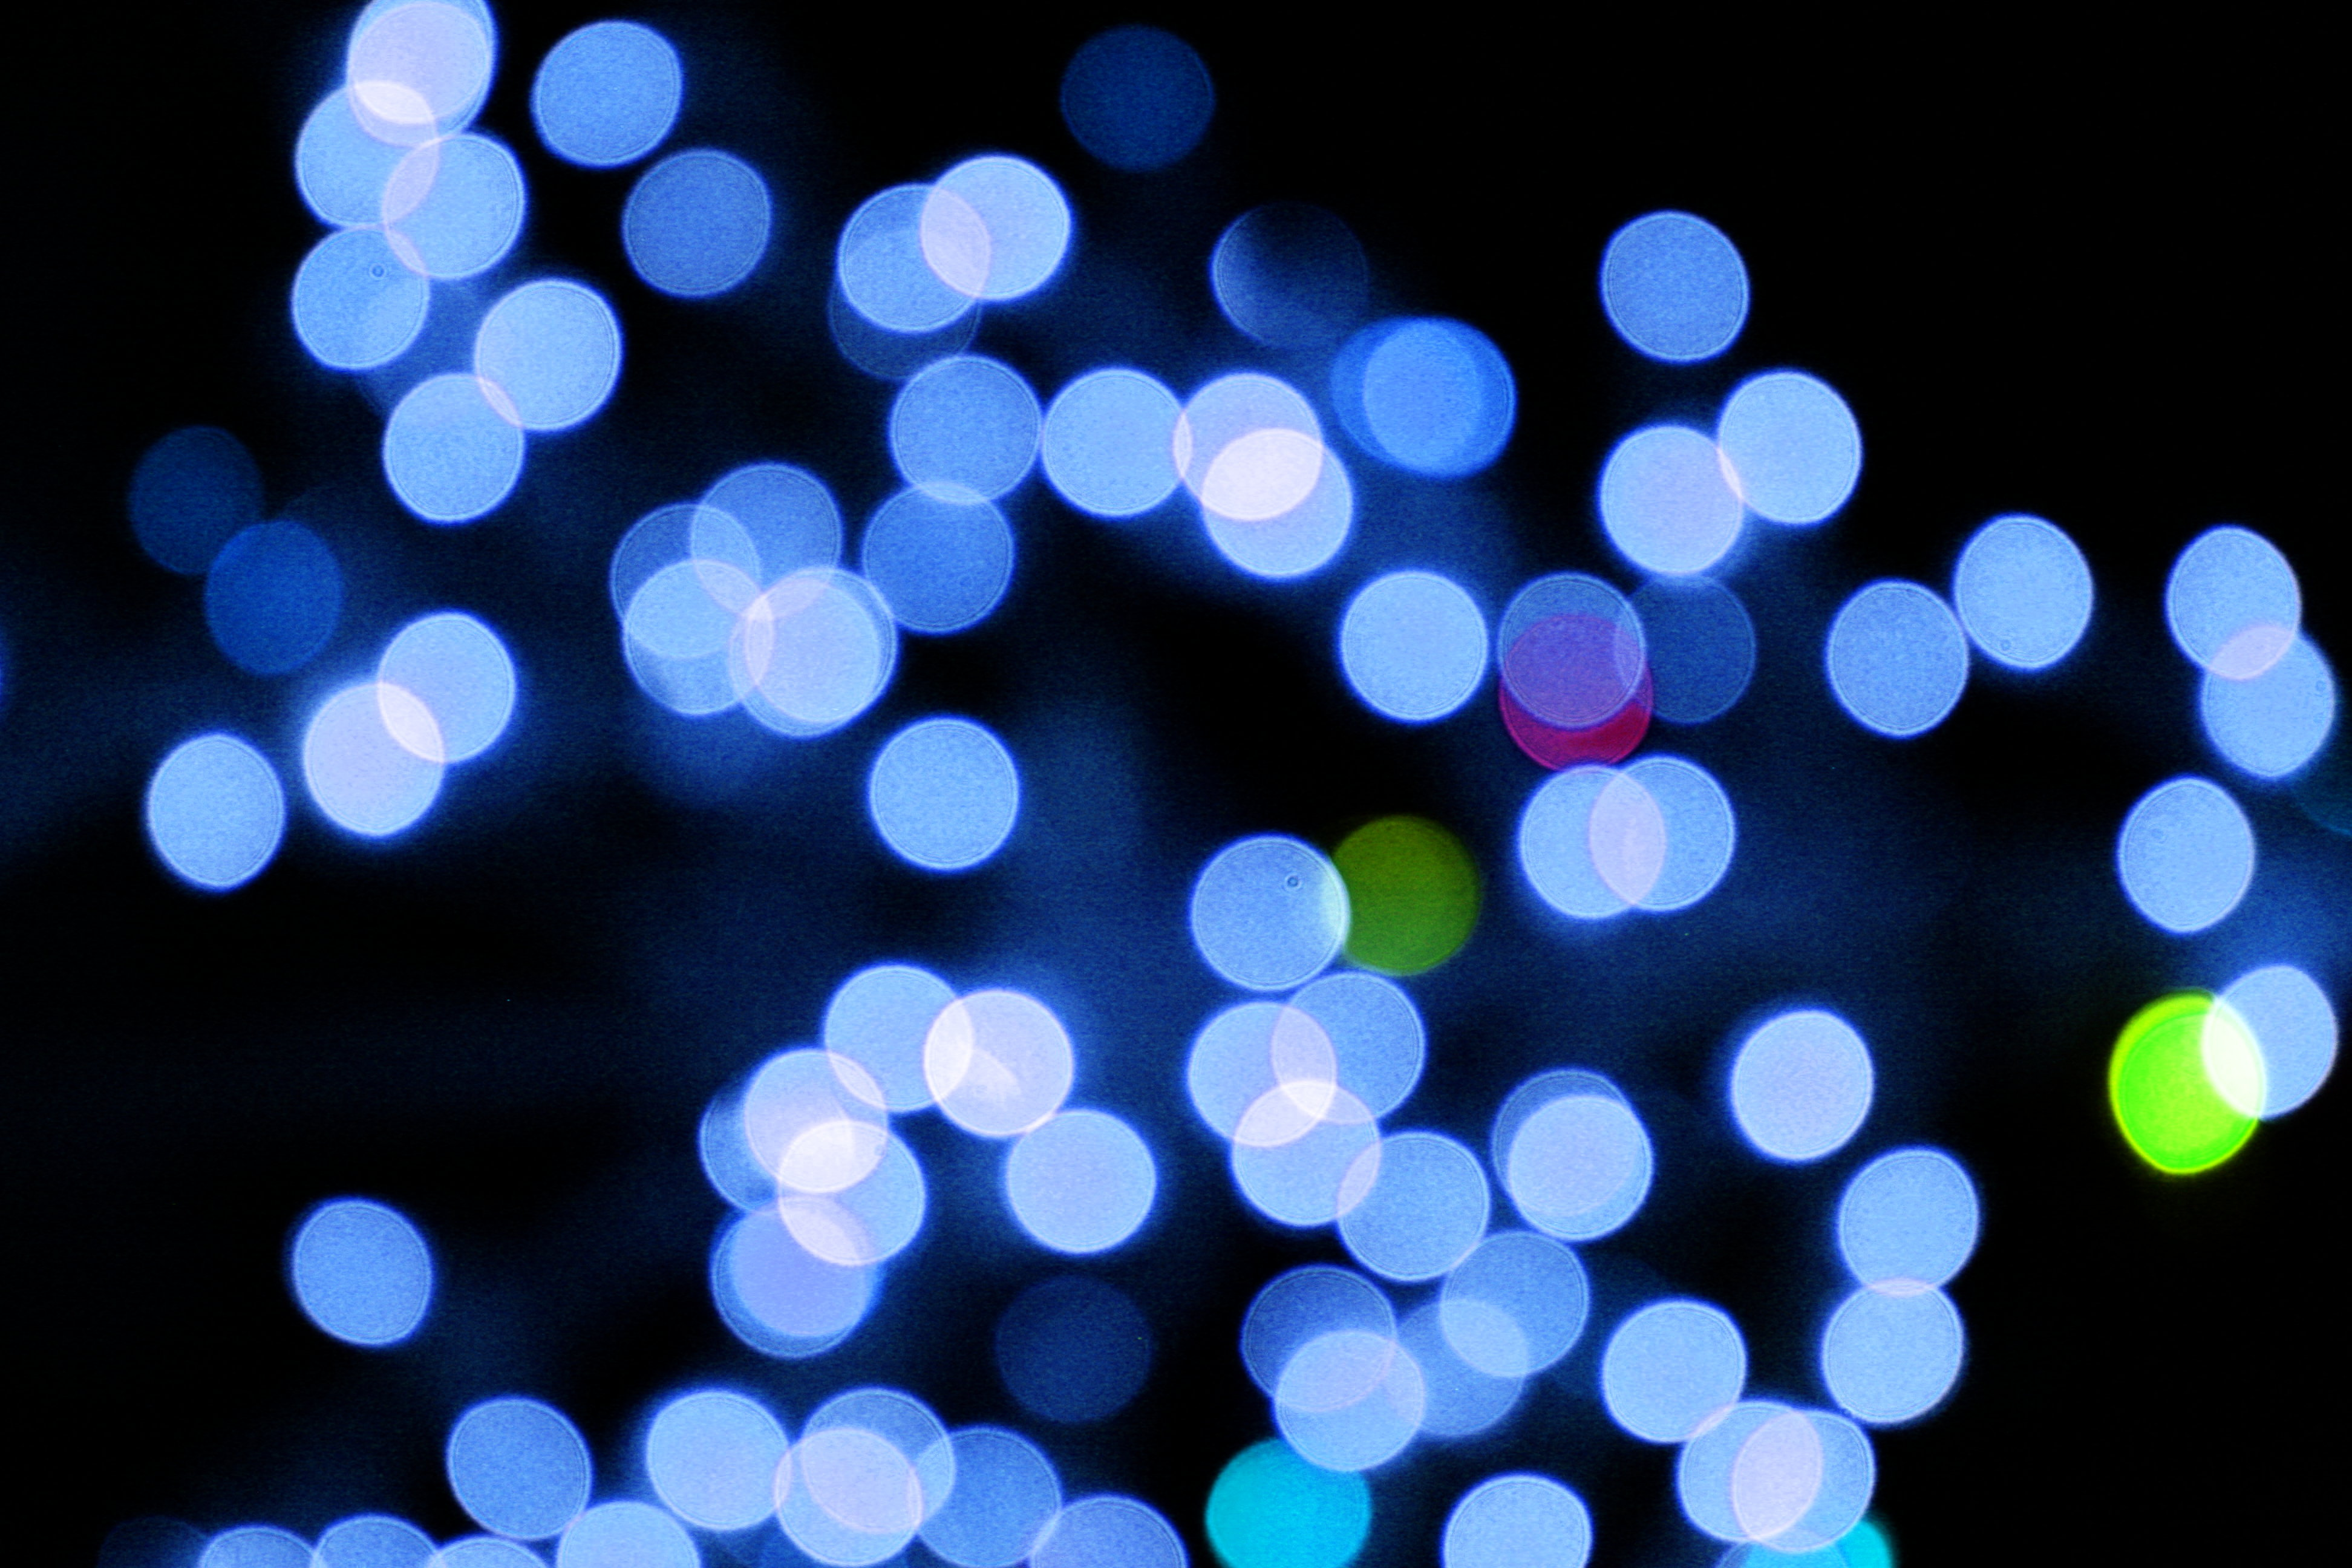 Blurred Christmas Lights Blue Picture | Free Photograph ...